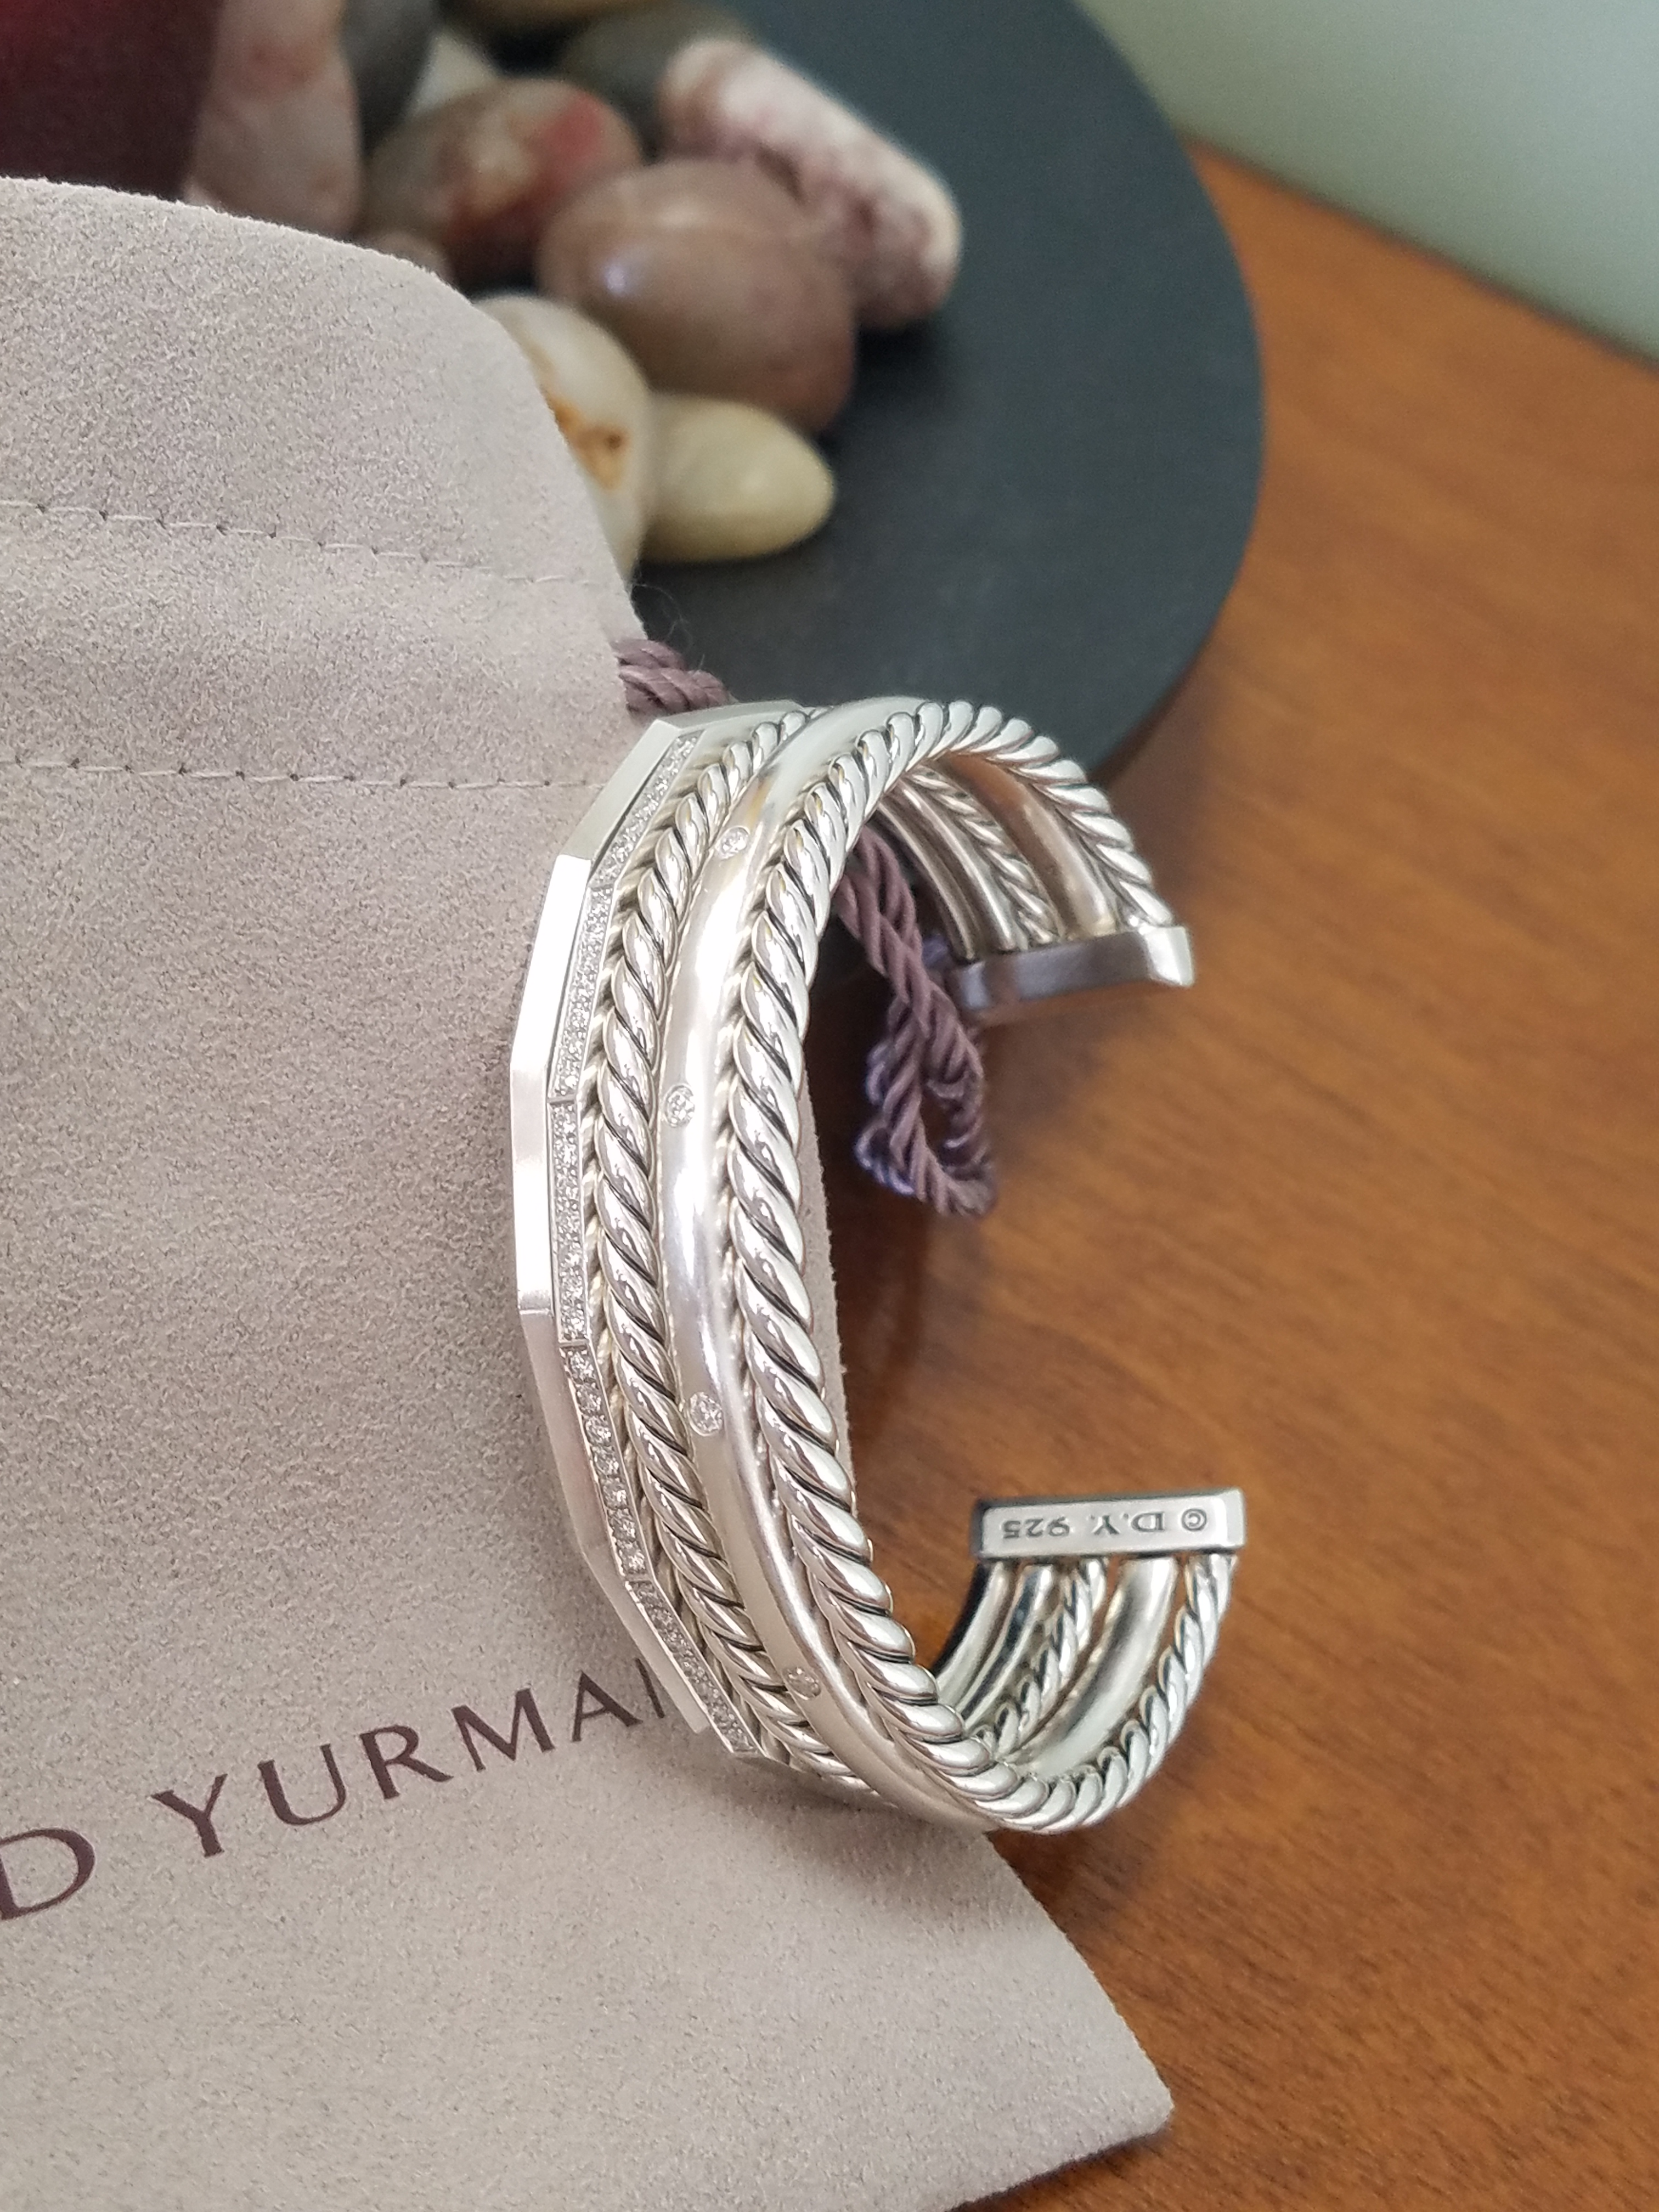 Sell silver jewelry from home